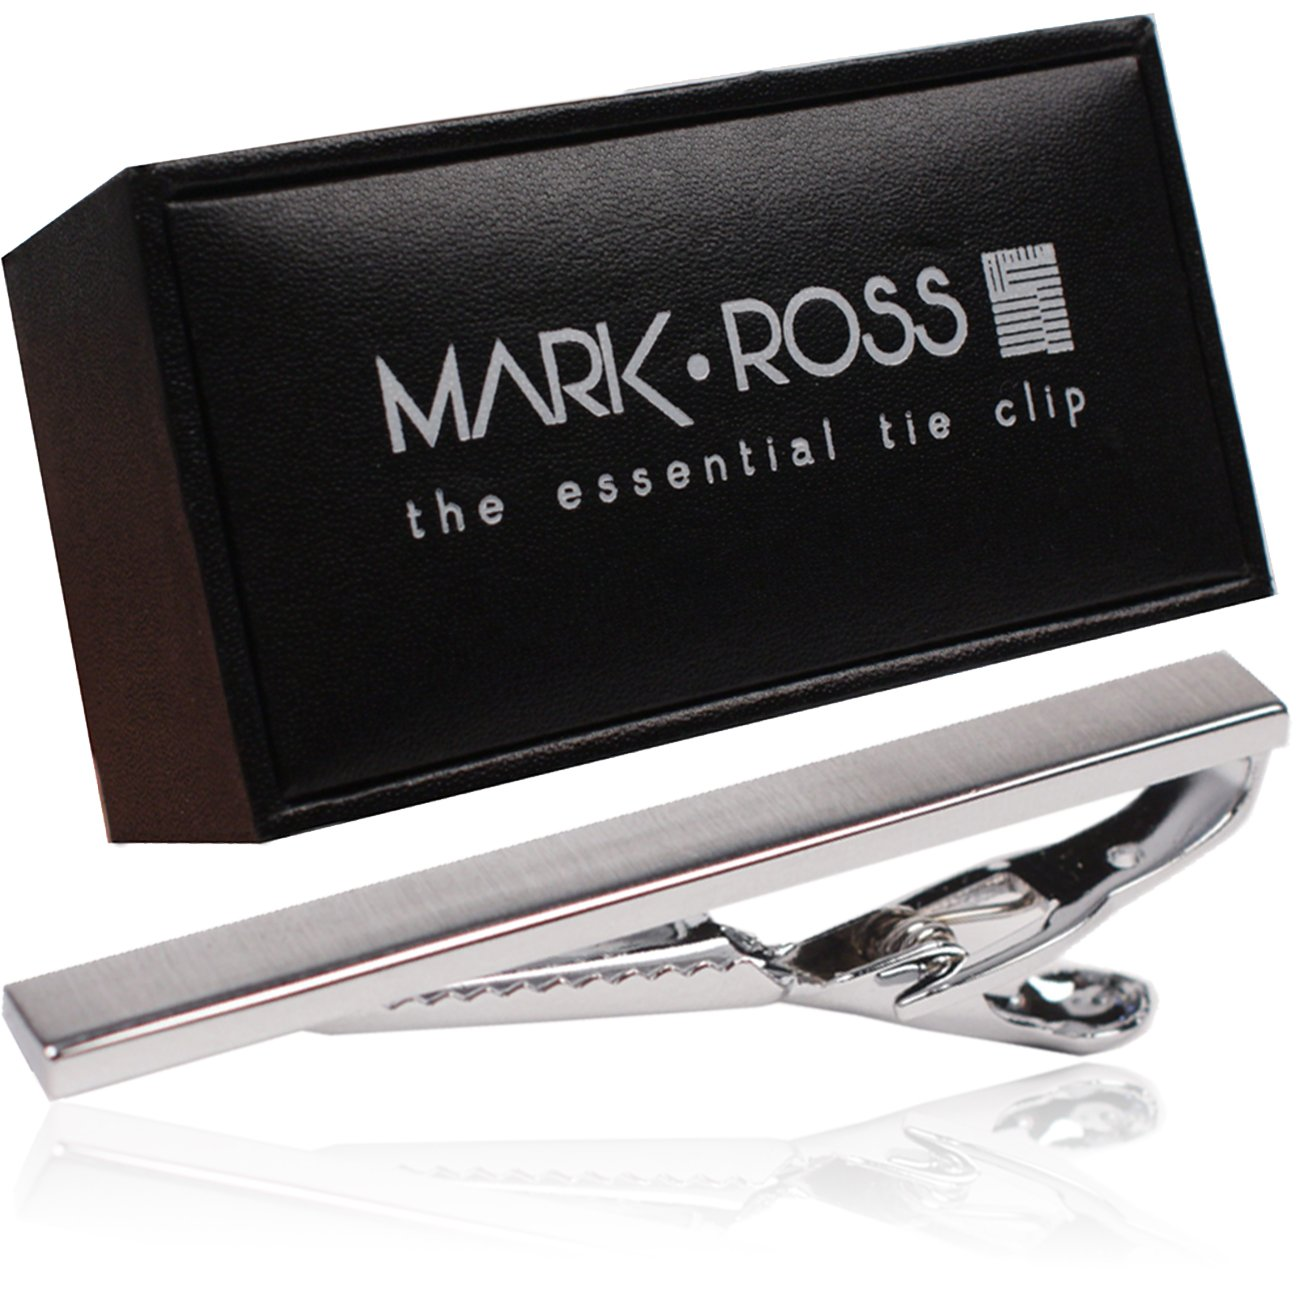 Tie Clip by Mark Ross - Brushed Silver Tone Tie Bar Clip for Men with Premium Giftbox Packaging 2.25'' Long